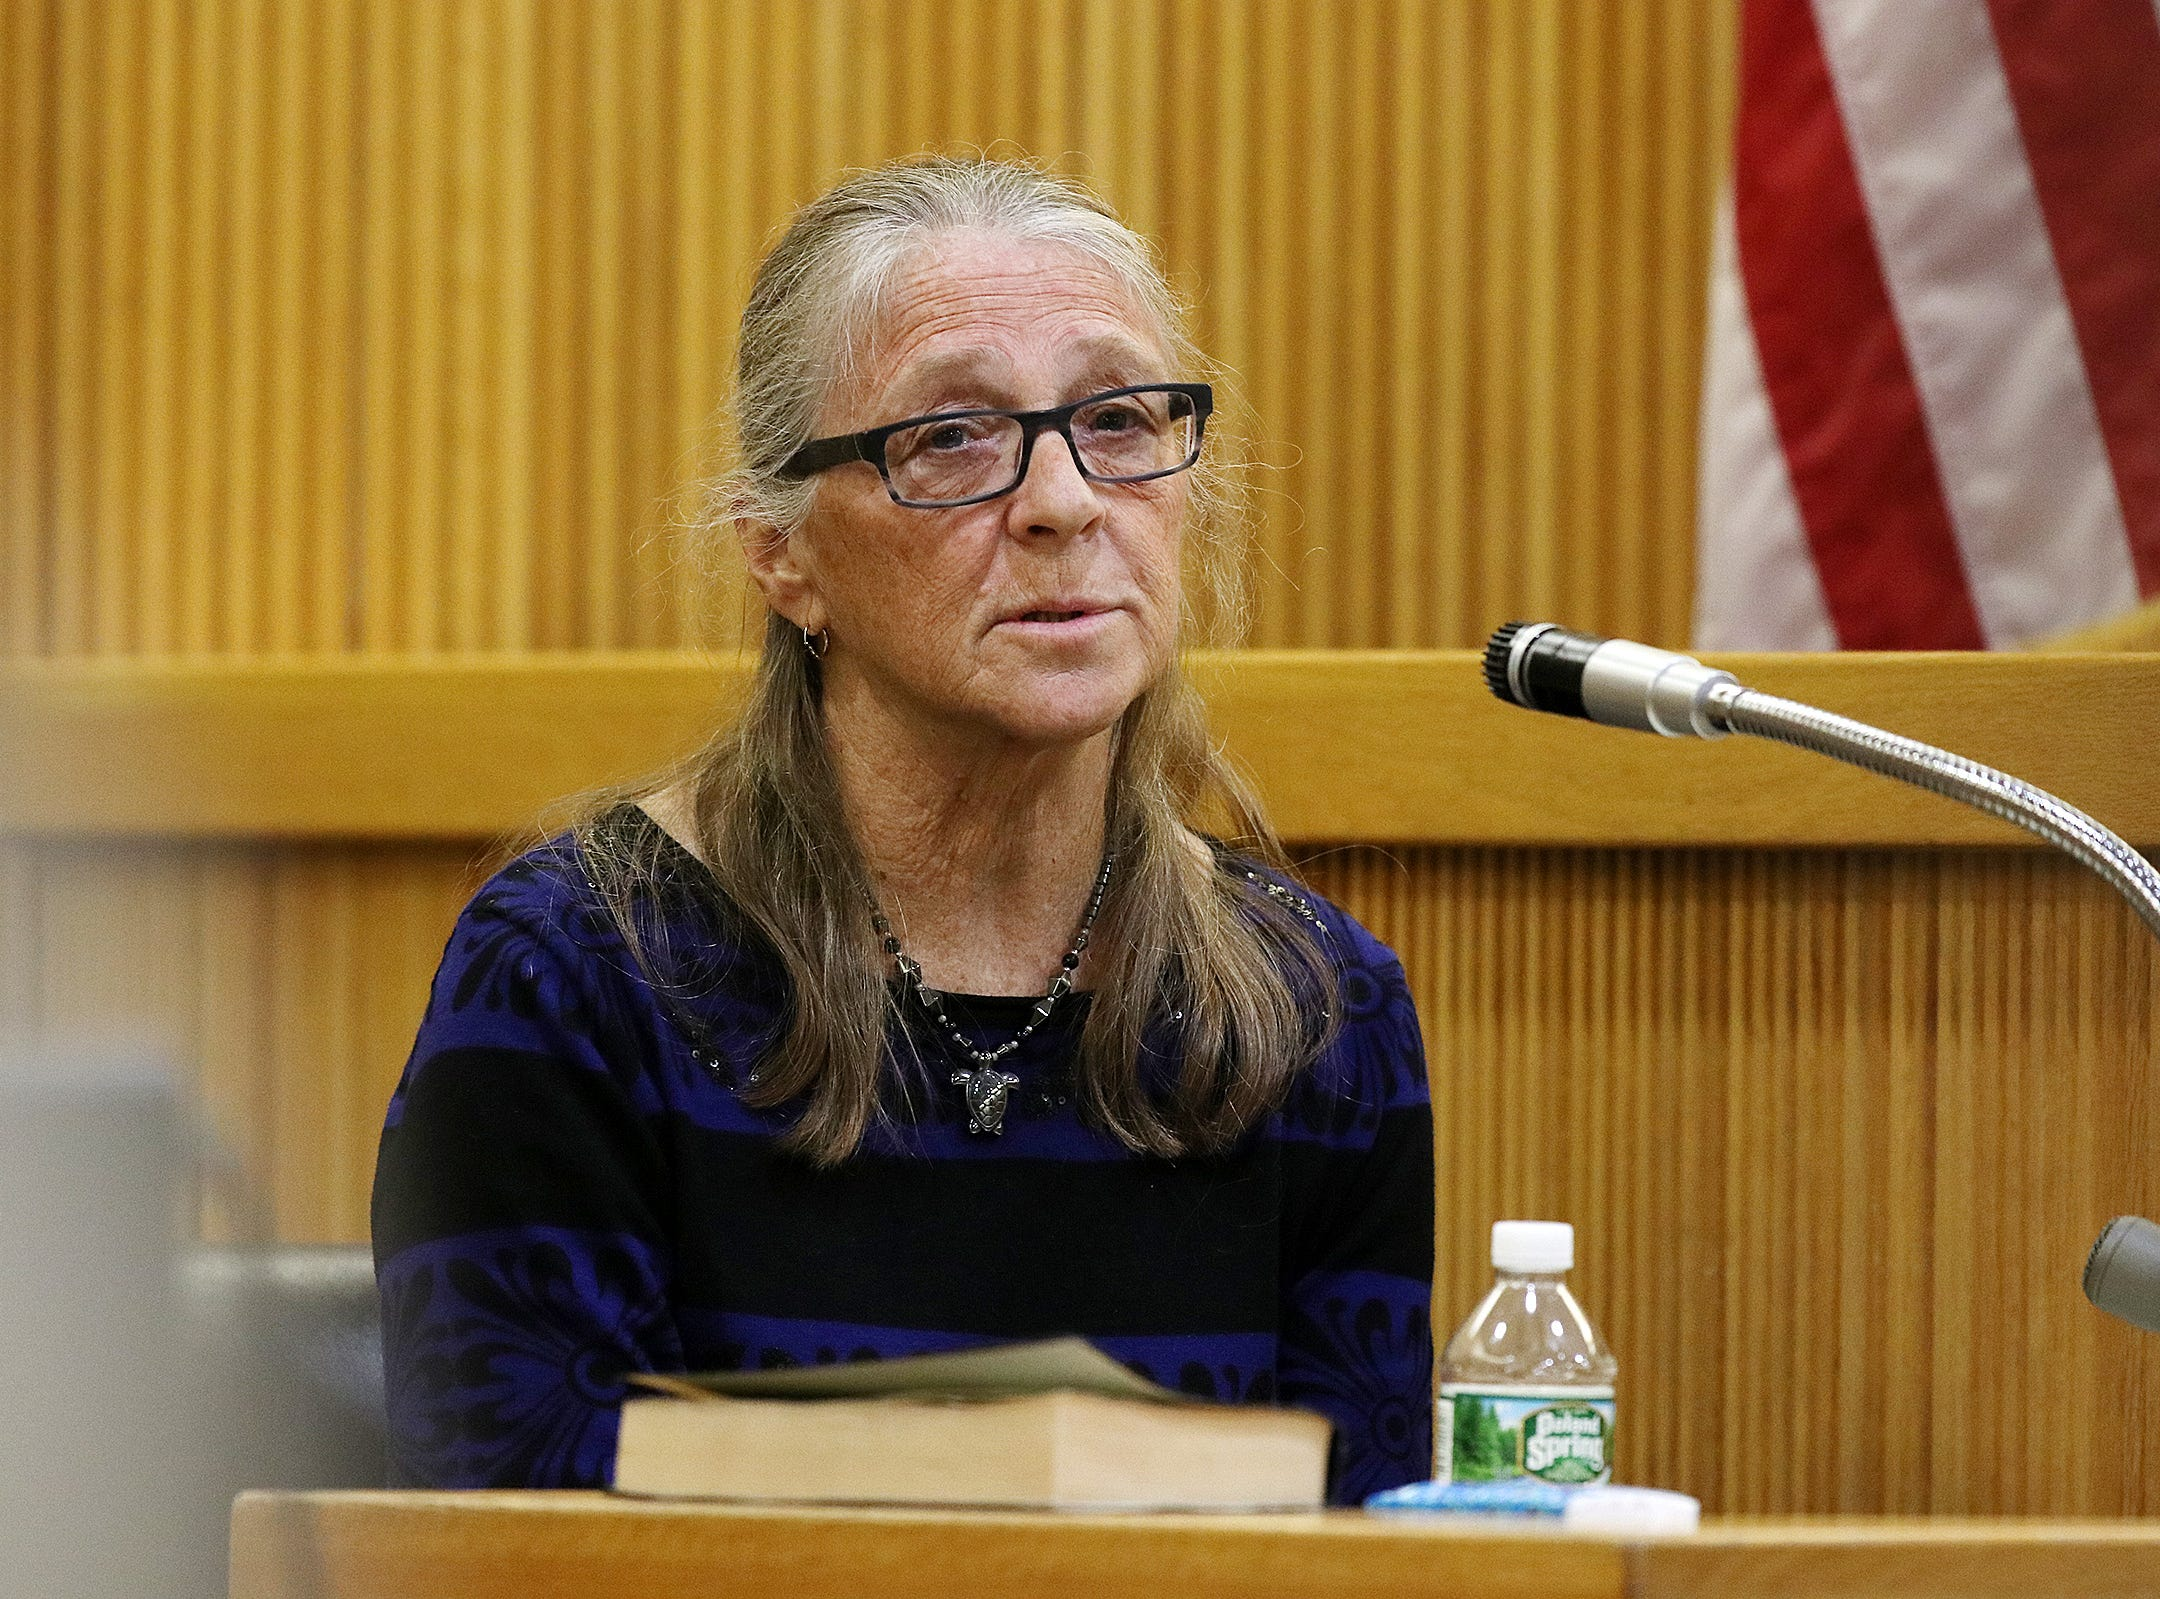 Linda Stitely, Sarah Stern's aunt, testifies during the trial of Liam McAtasney, who is charged with the murder of former high school classmate, Sarah Stern, before Superior Court Judge Richard W. English at the Monmouth County Courthouse in Freehold, NJ Wednesday January 30, 2019.